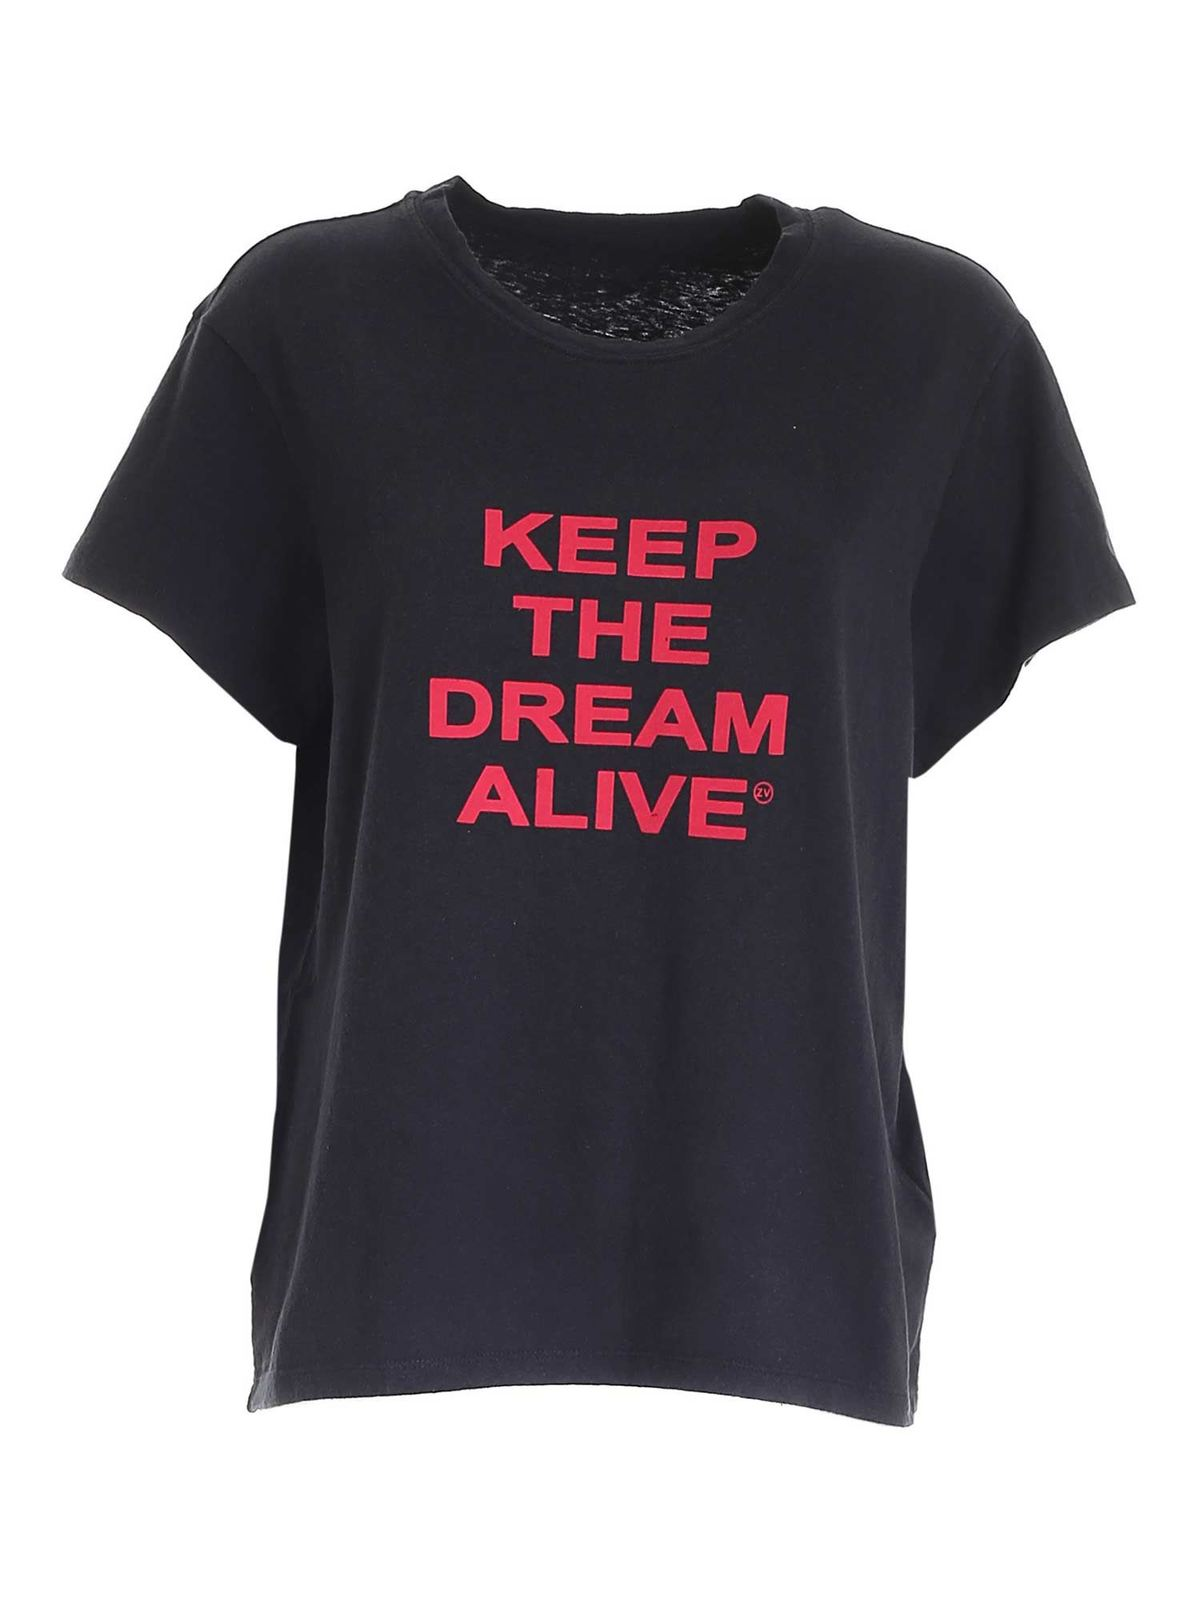 Zadig & Voltaire RED LOGO T-SHIRT IN BLACK